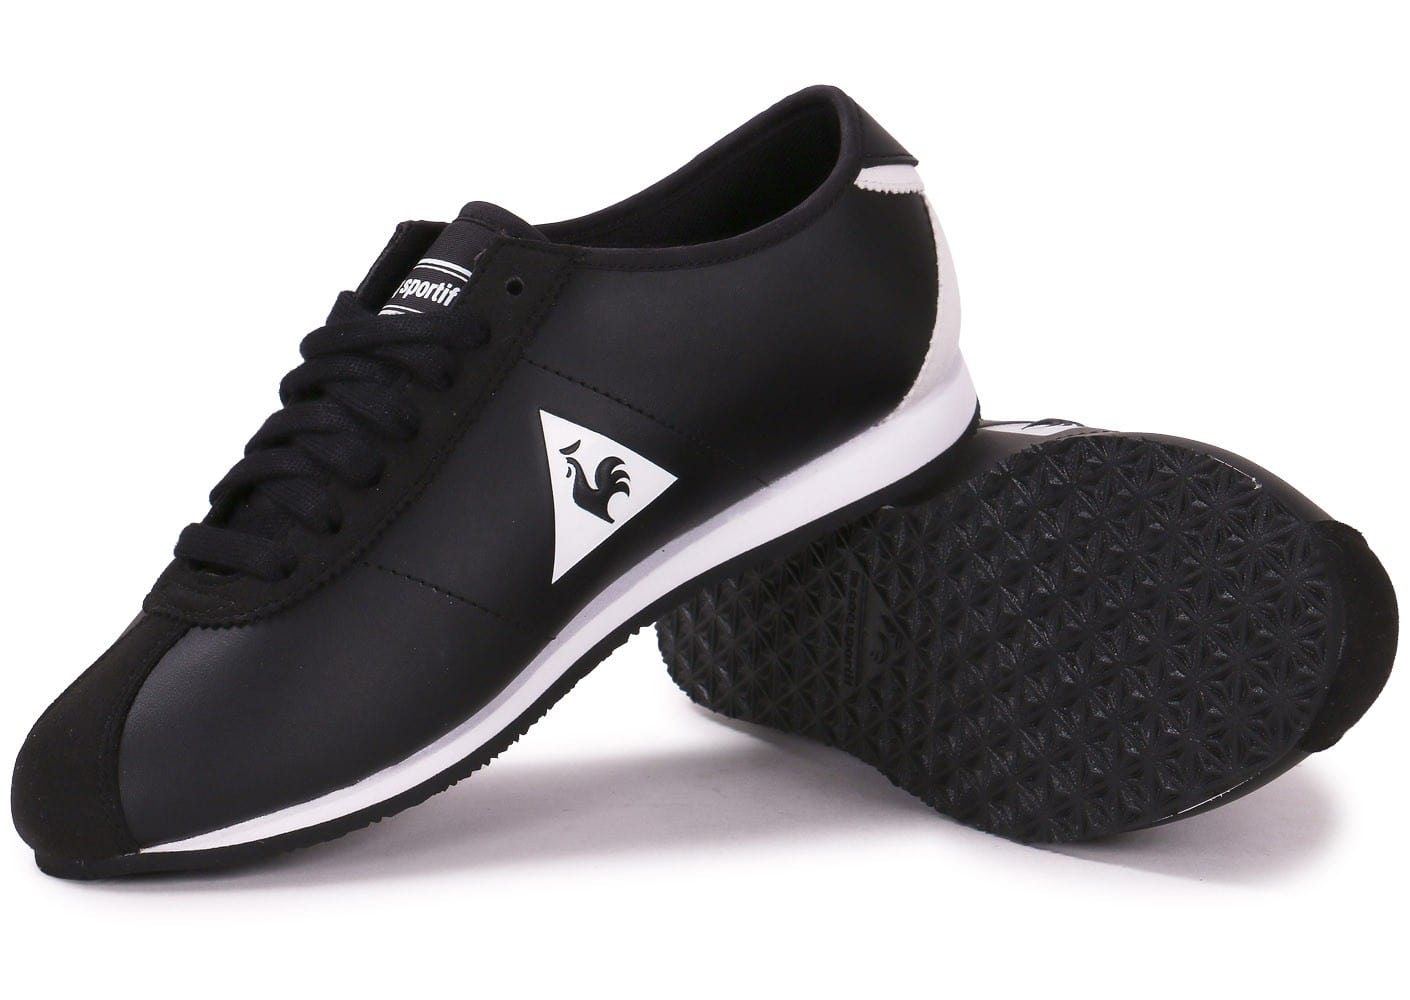 le coq sportif wendon noire et blanche chaussures toutes les baskets sold es chausport. Black Bedroom Furniture Sets. Home Design Ideas